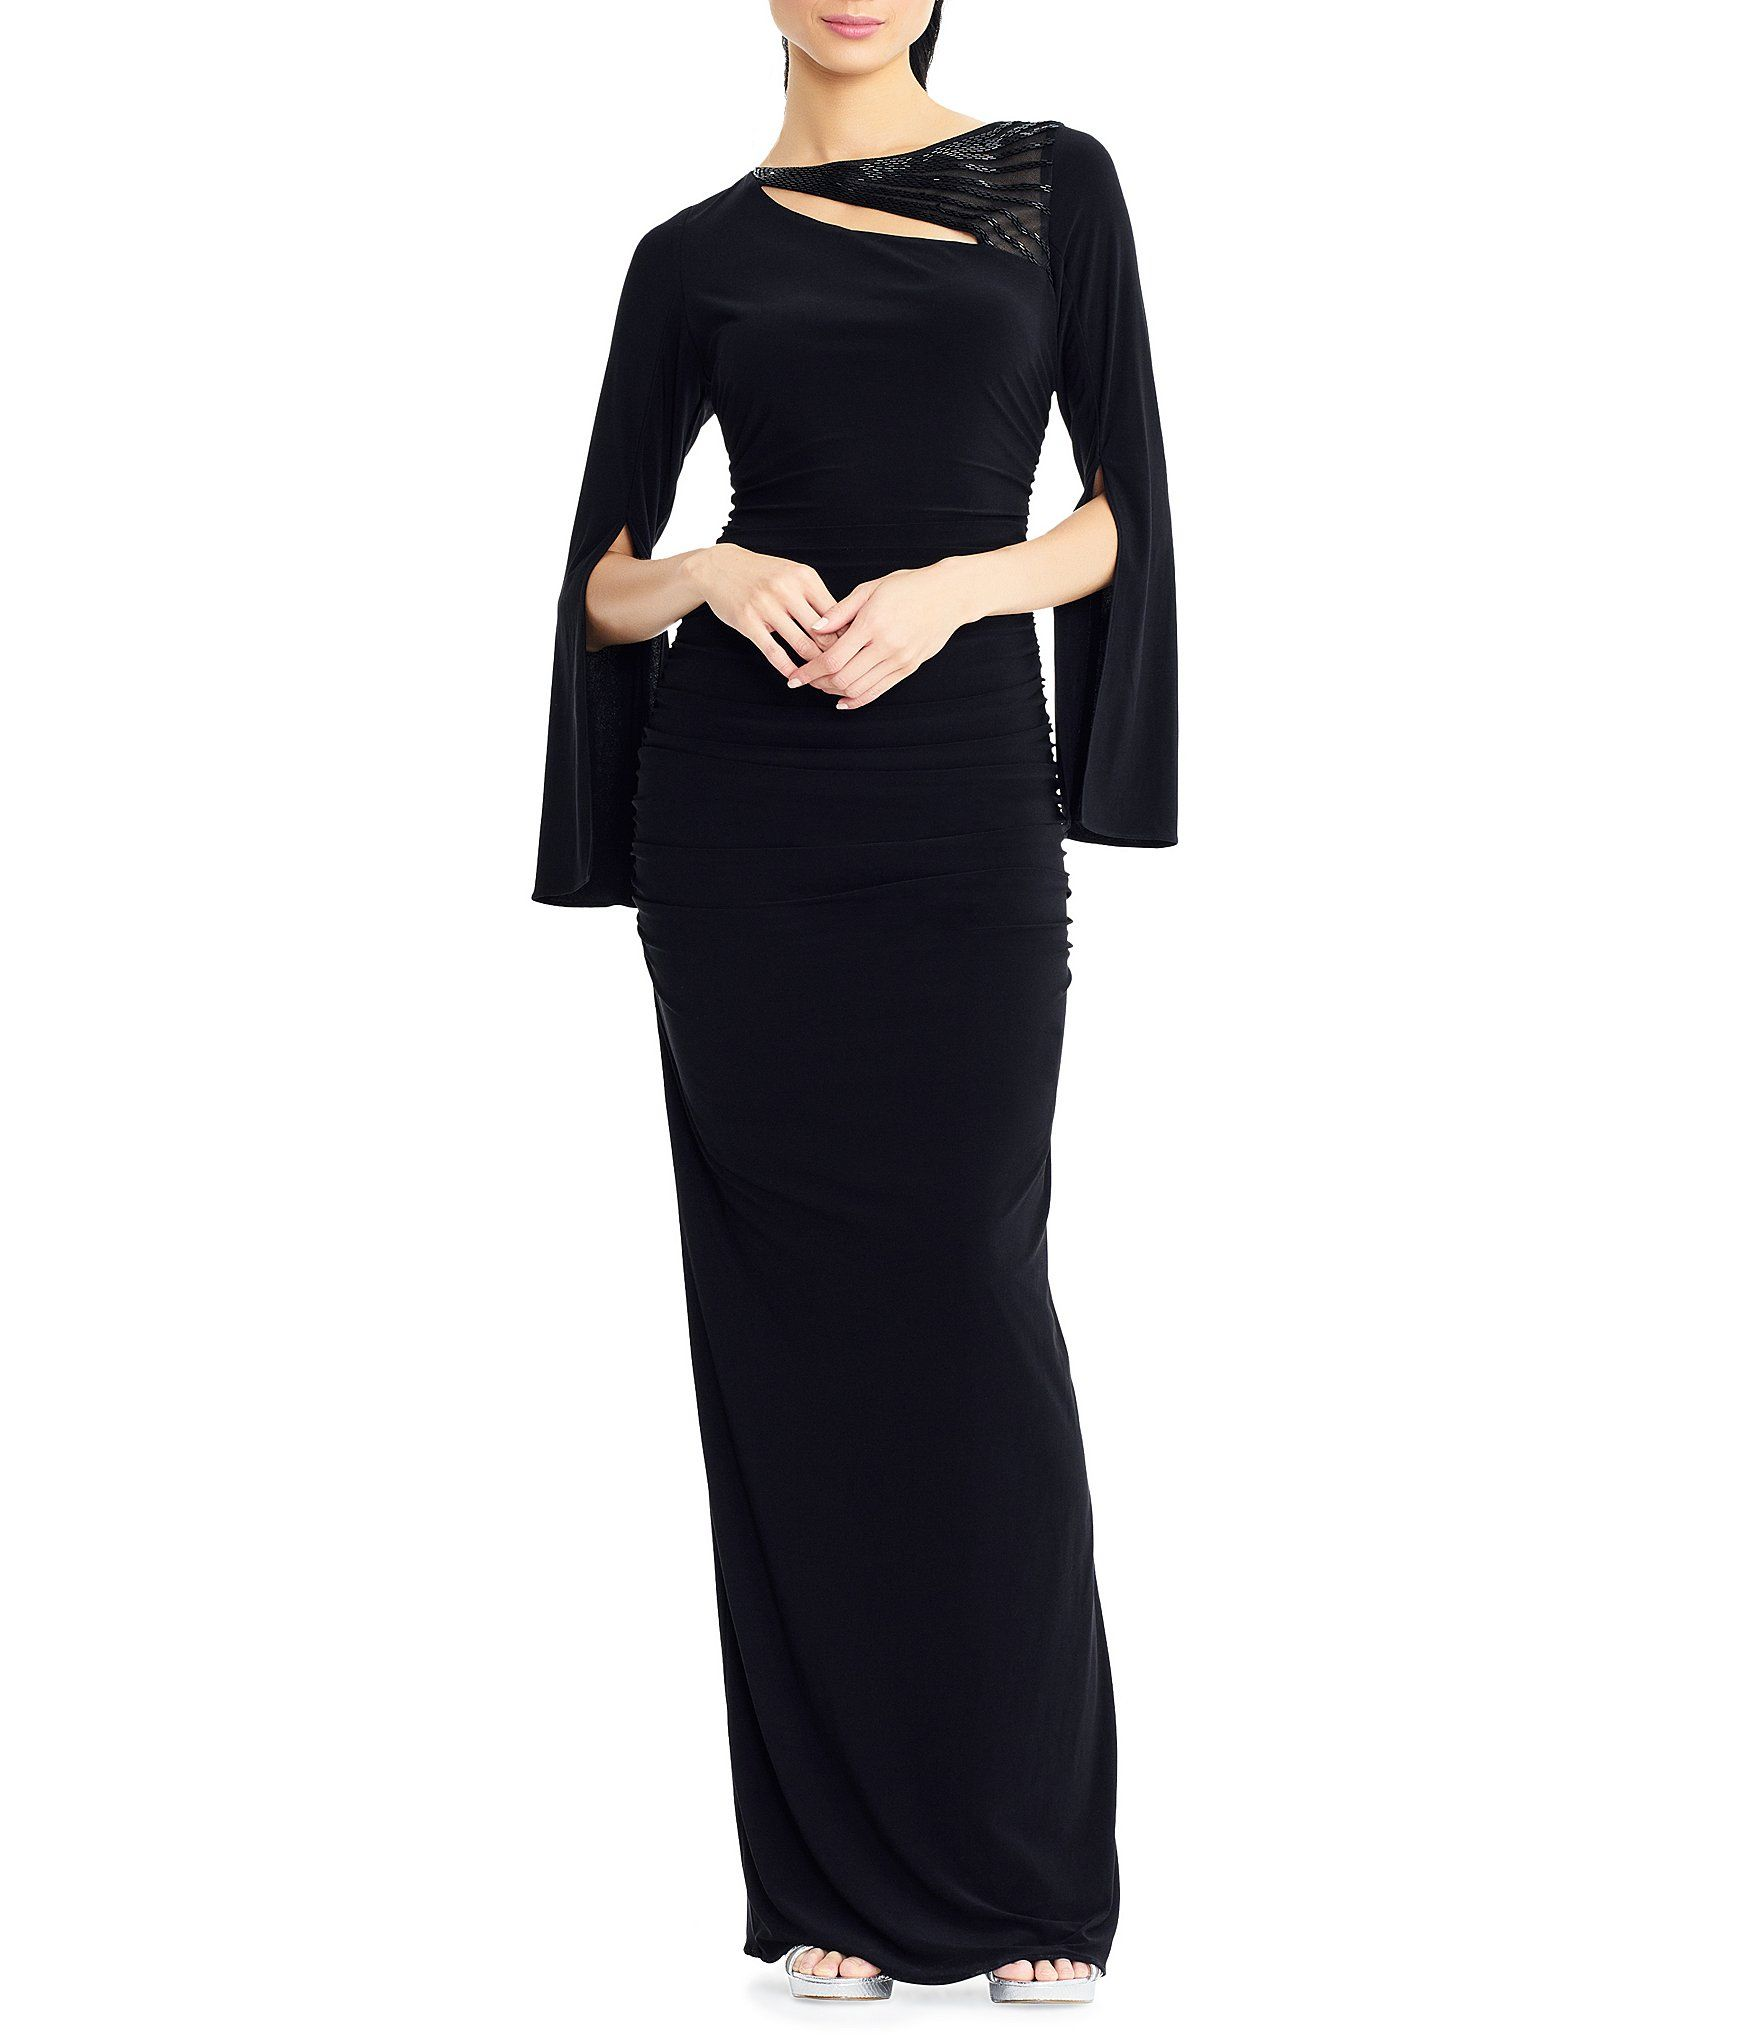 524d8b52648 Shop for Adrianna Papell Petite Size Beaded Split Long Sleeve Matte Jersey  Gown at Dillards.com. Visit Dillards.com to find clothing